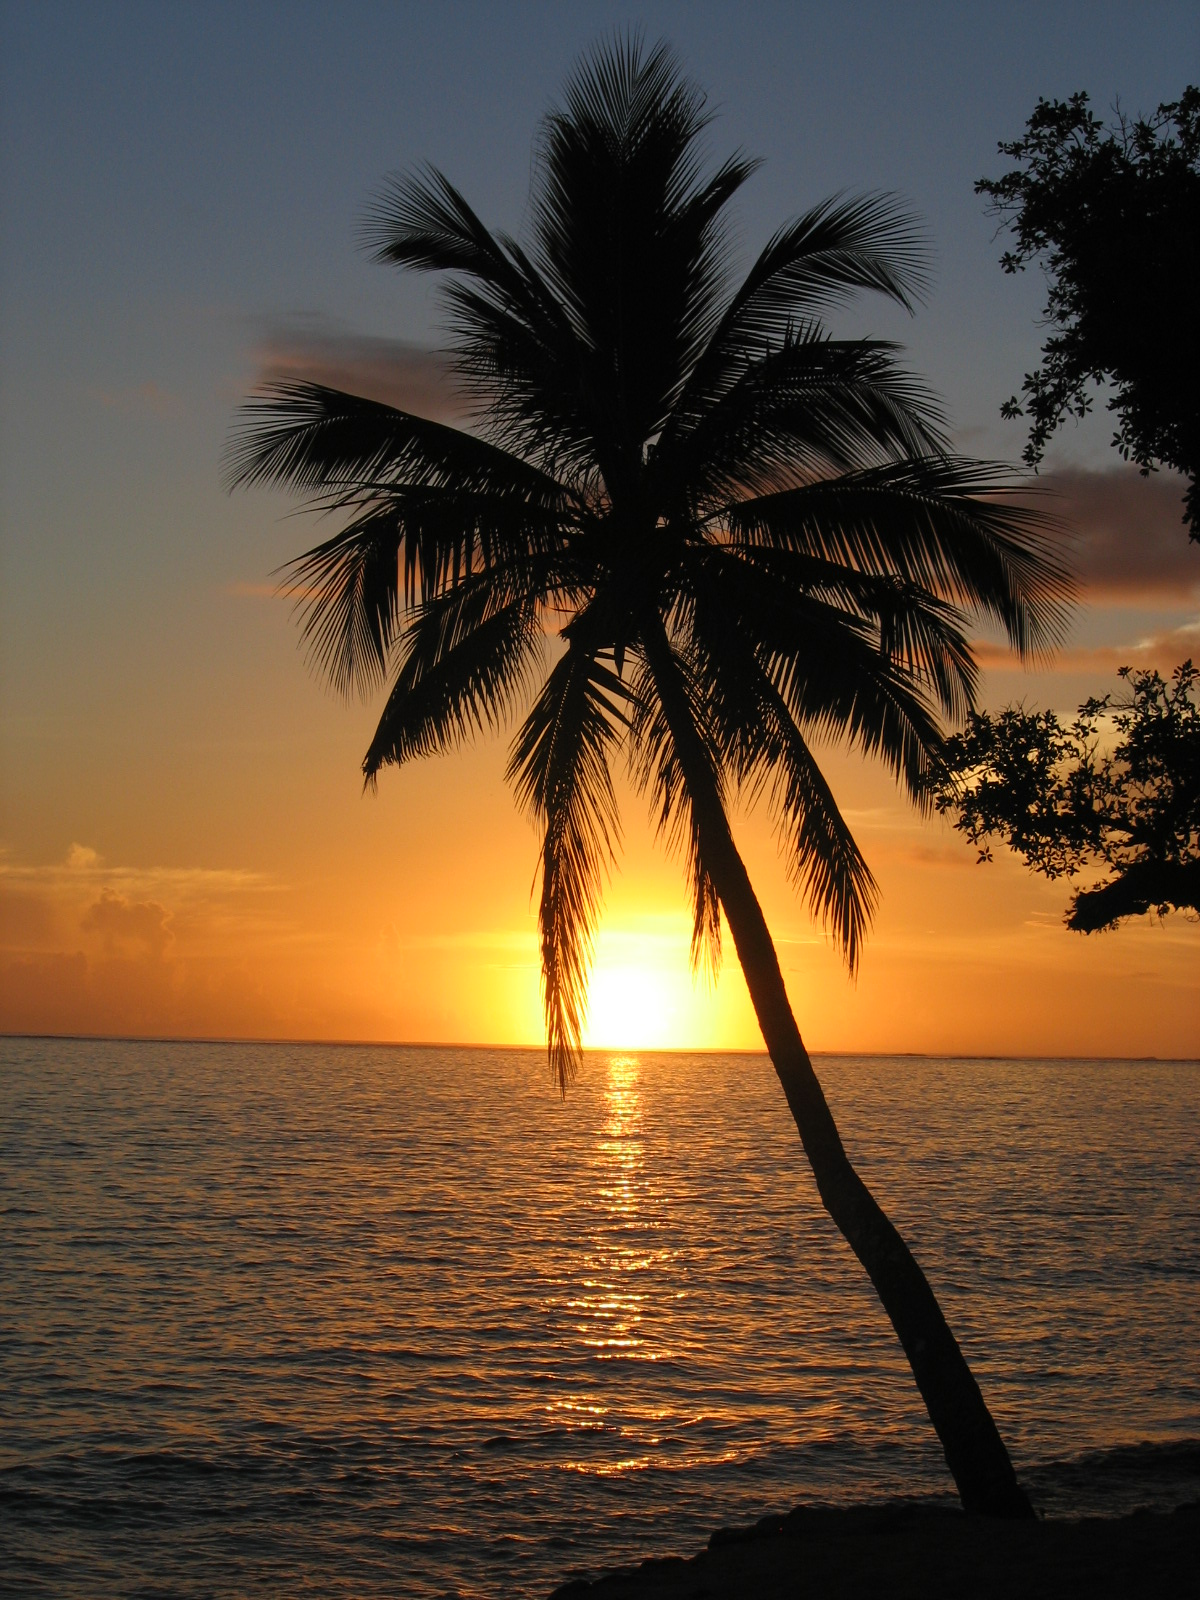 FileSunset With Coconut Palm Tree Fiji